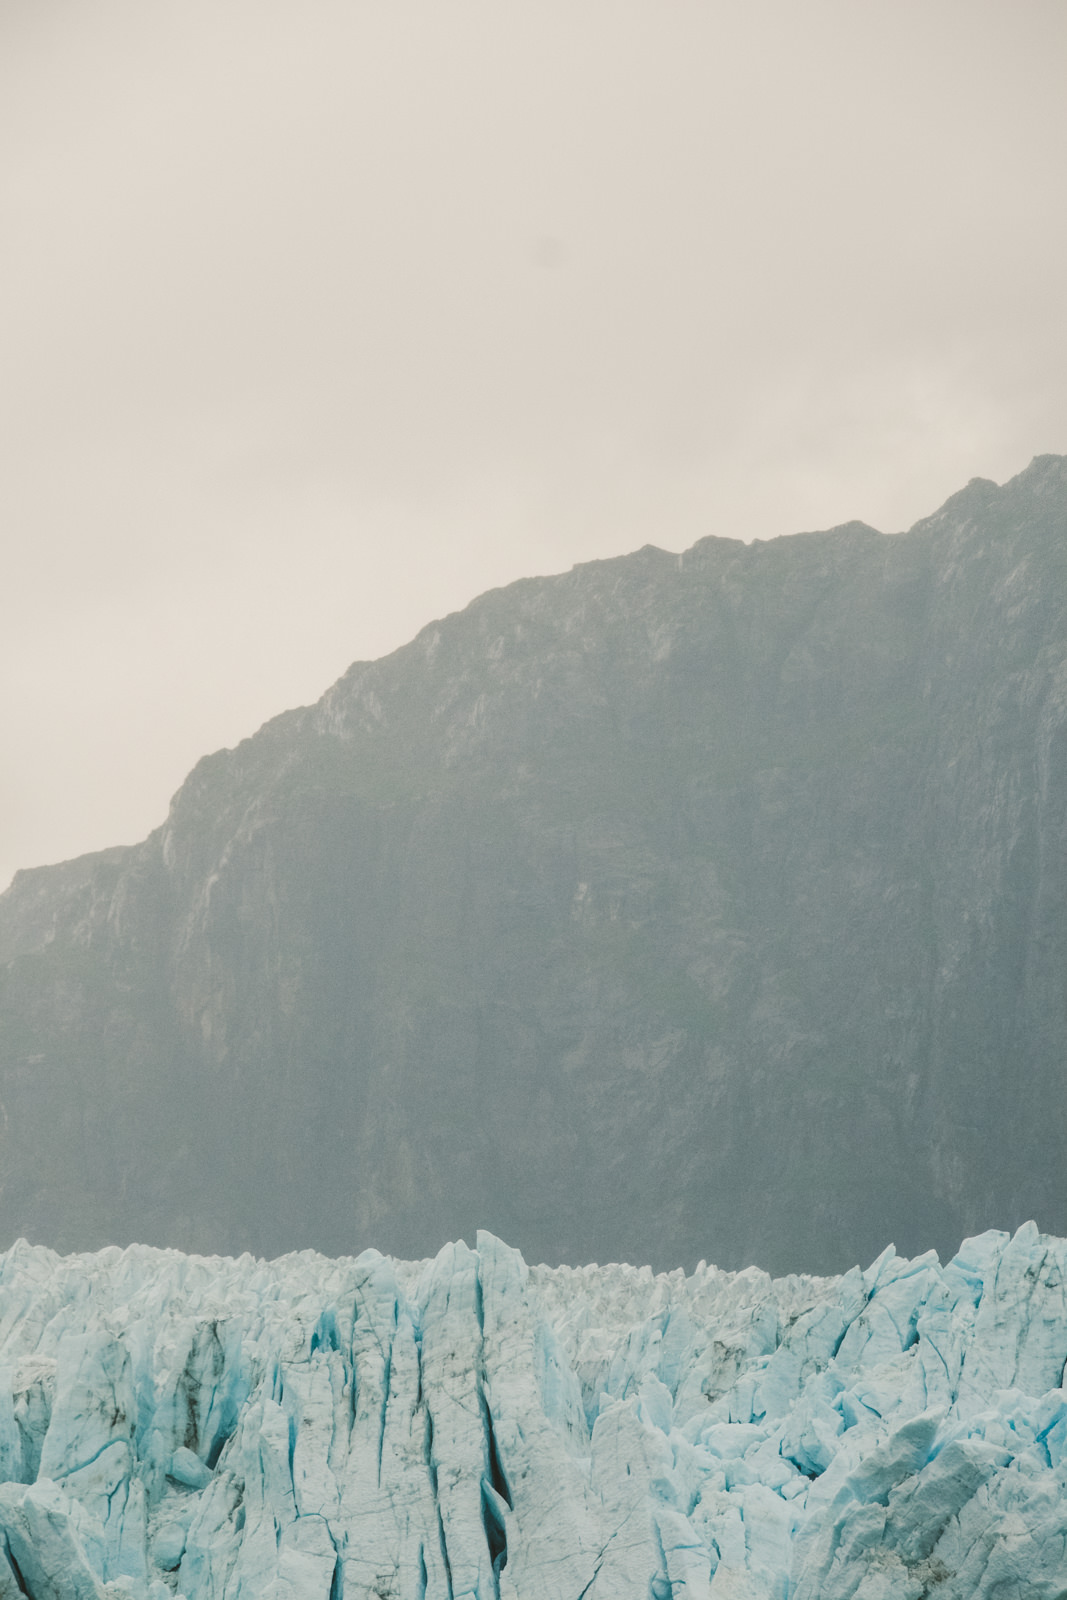 Glacier detail on Alaska Cruise taken by wedding photographer